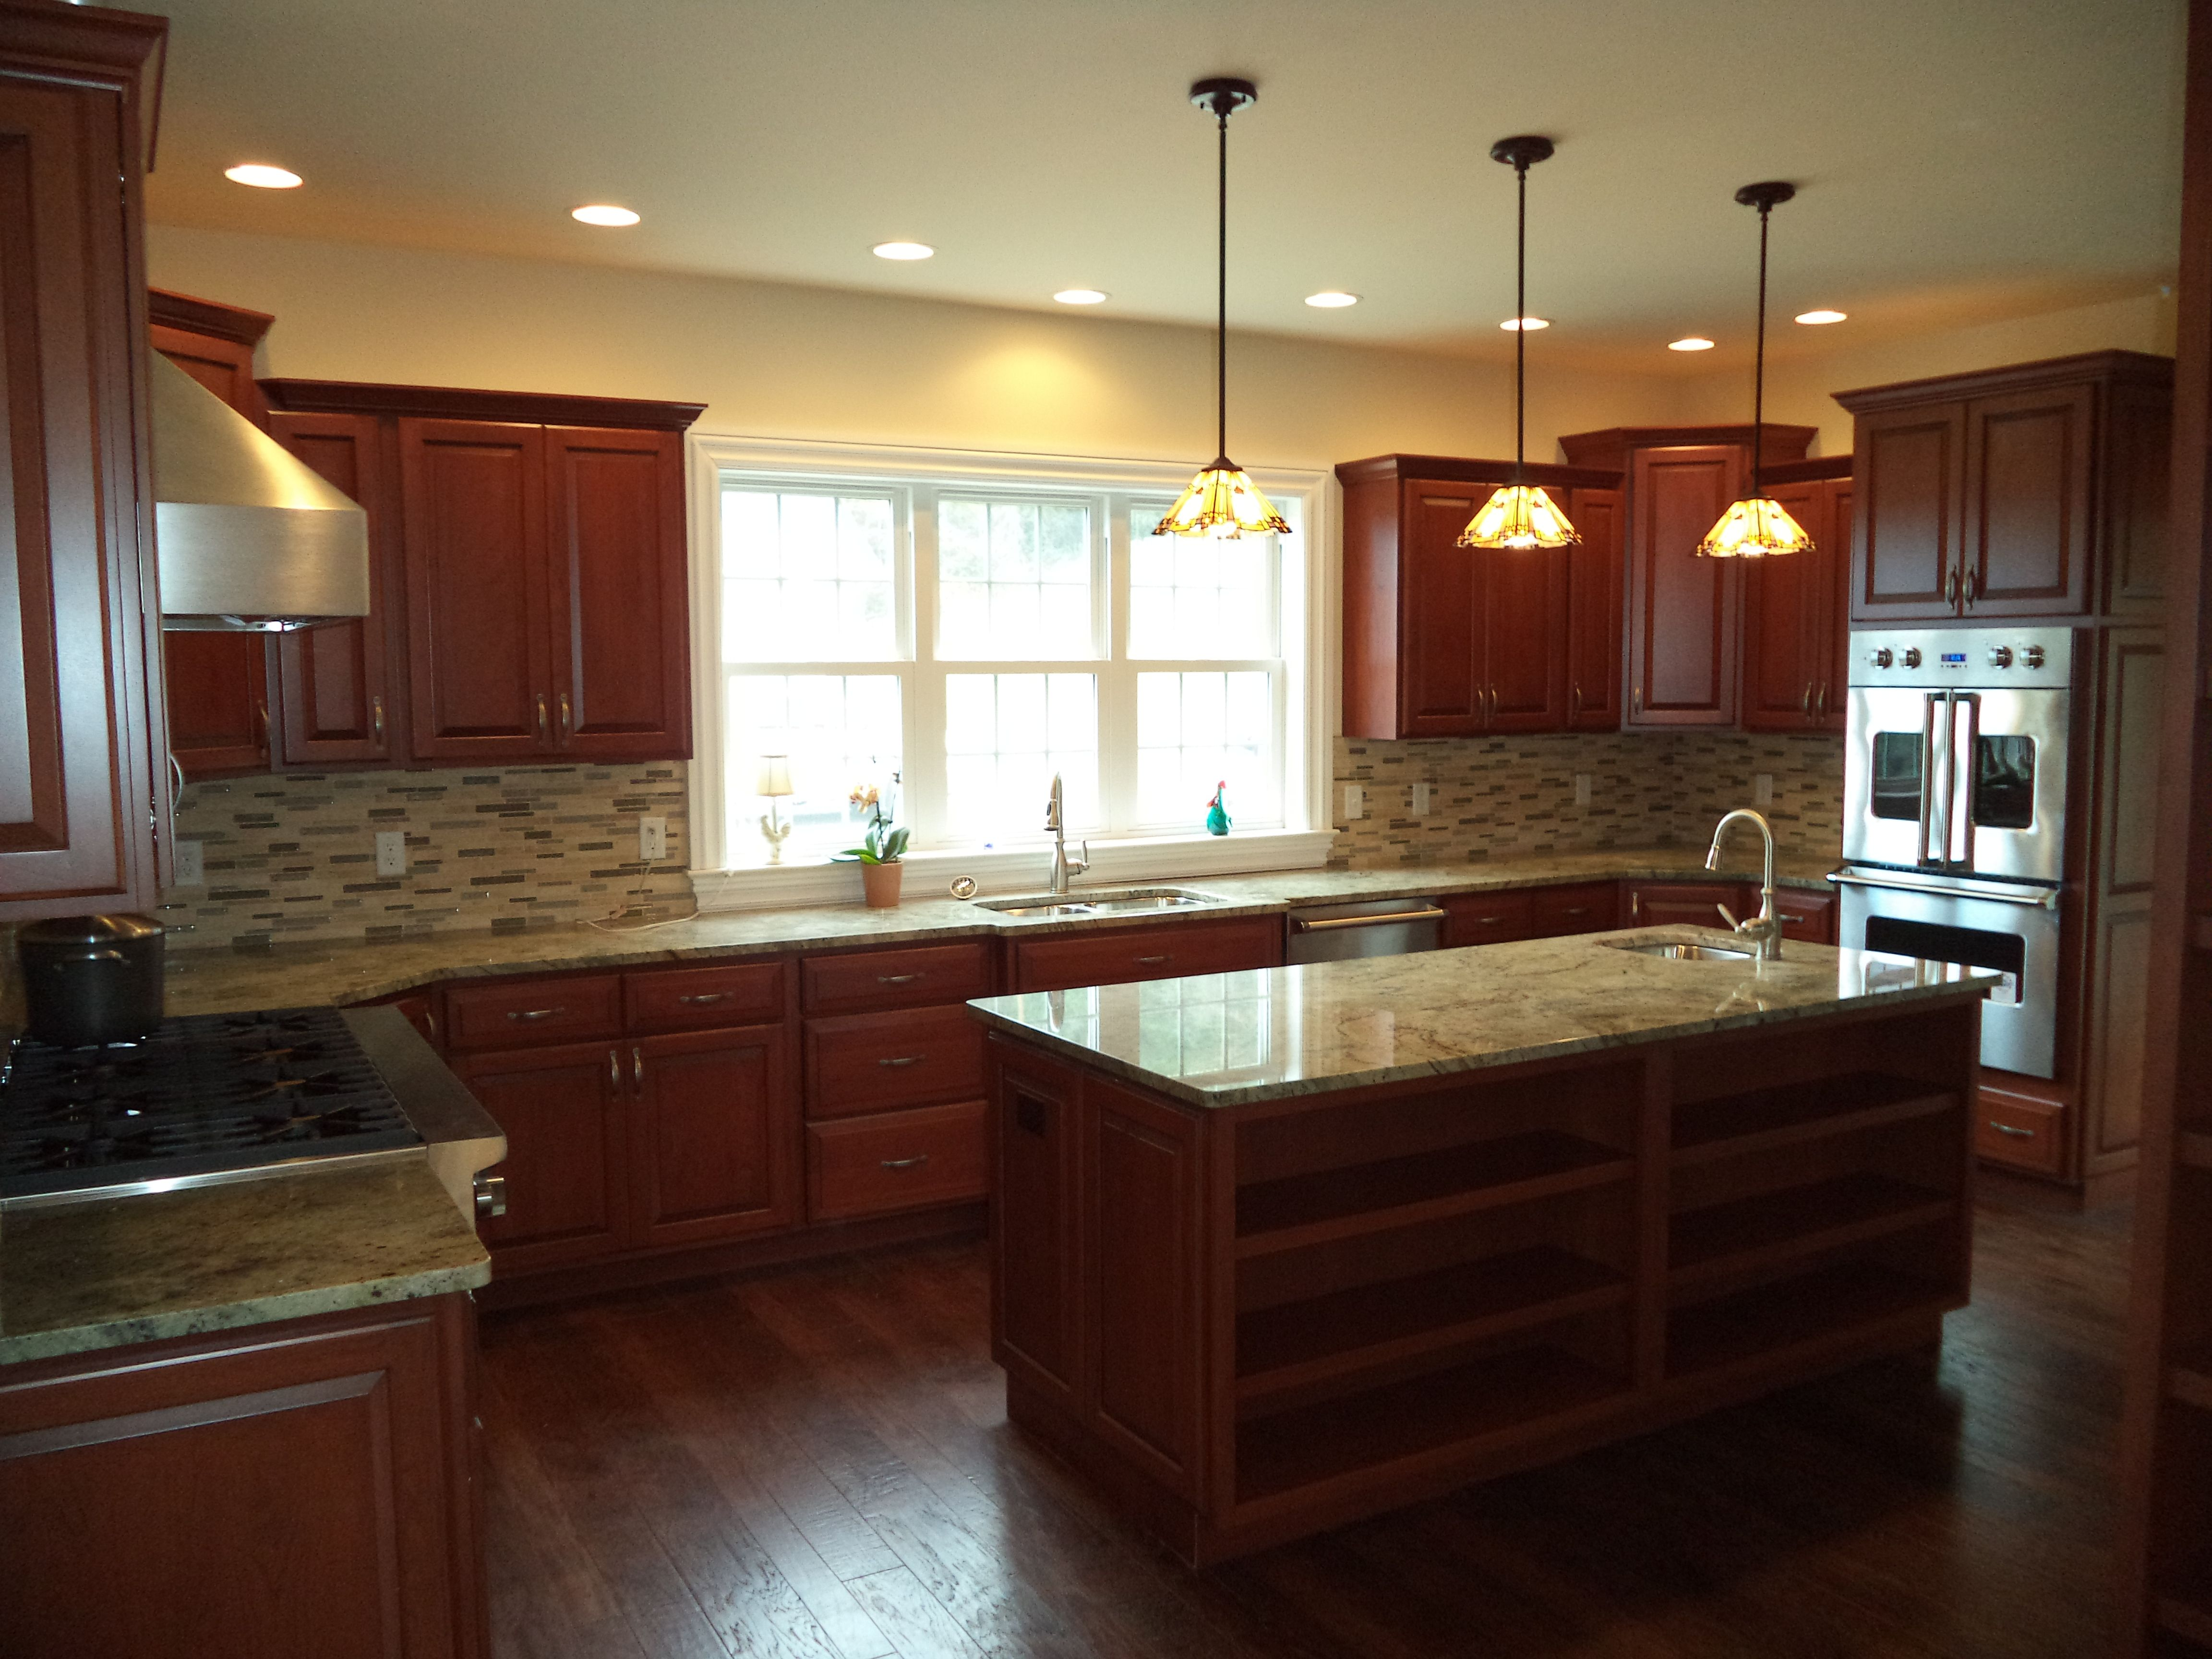 Morehart Kitchen Design With Cherry Wood Cabinets Glass Stone Amusing Cherrywood Kitchen Designs Decorating Inspiration